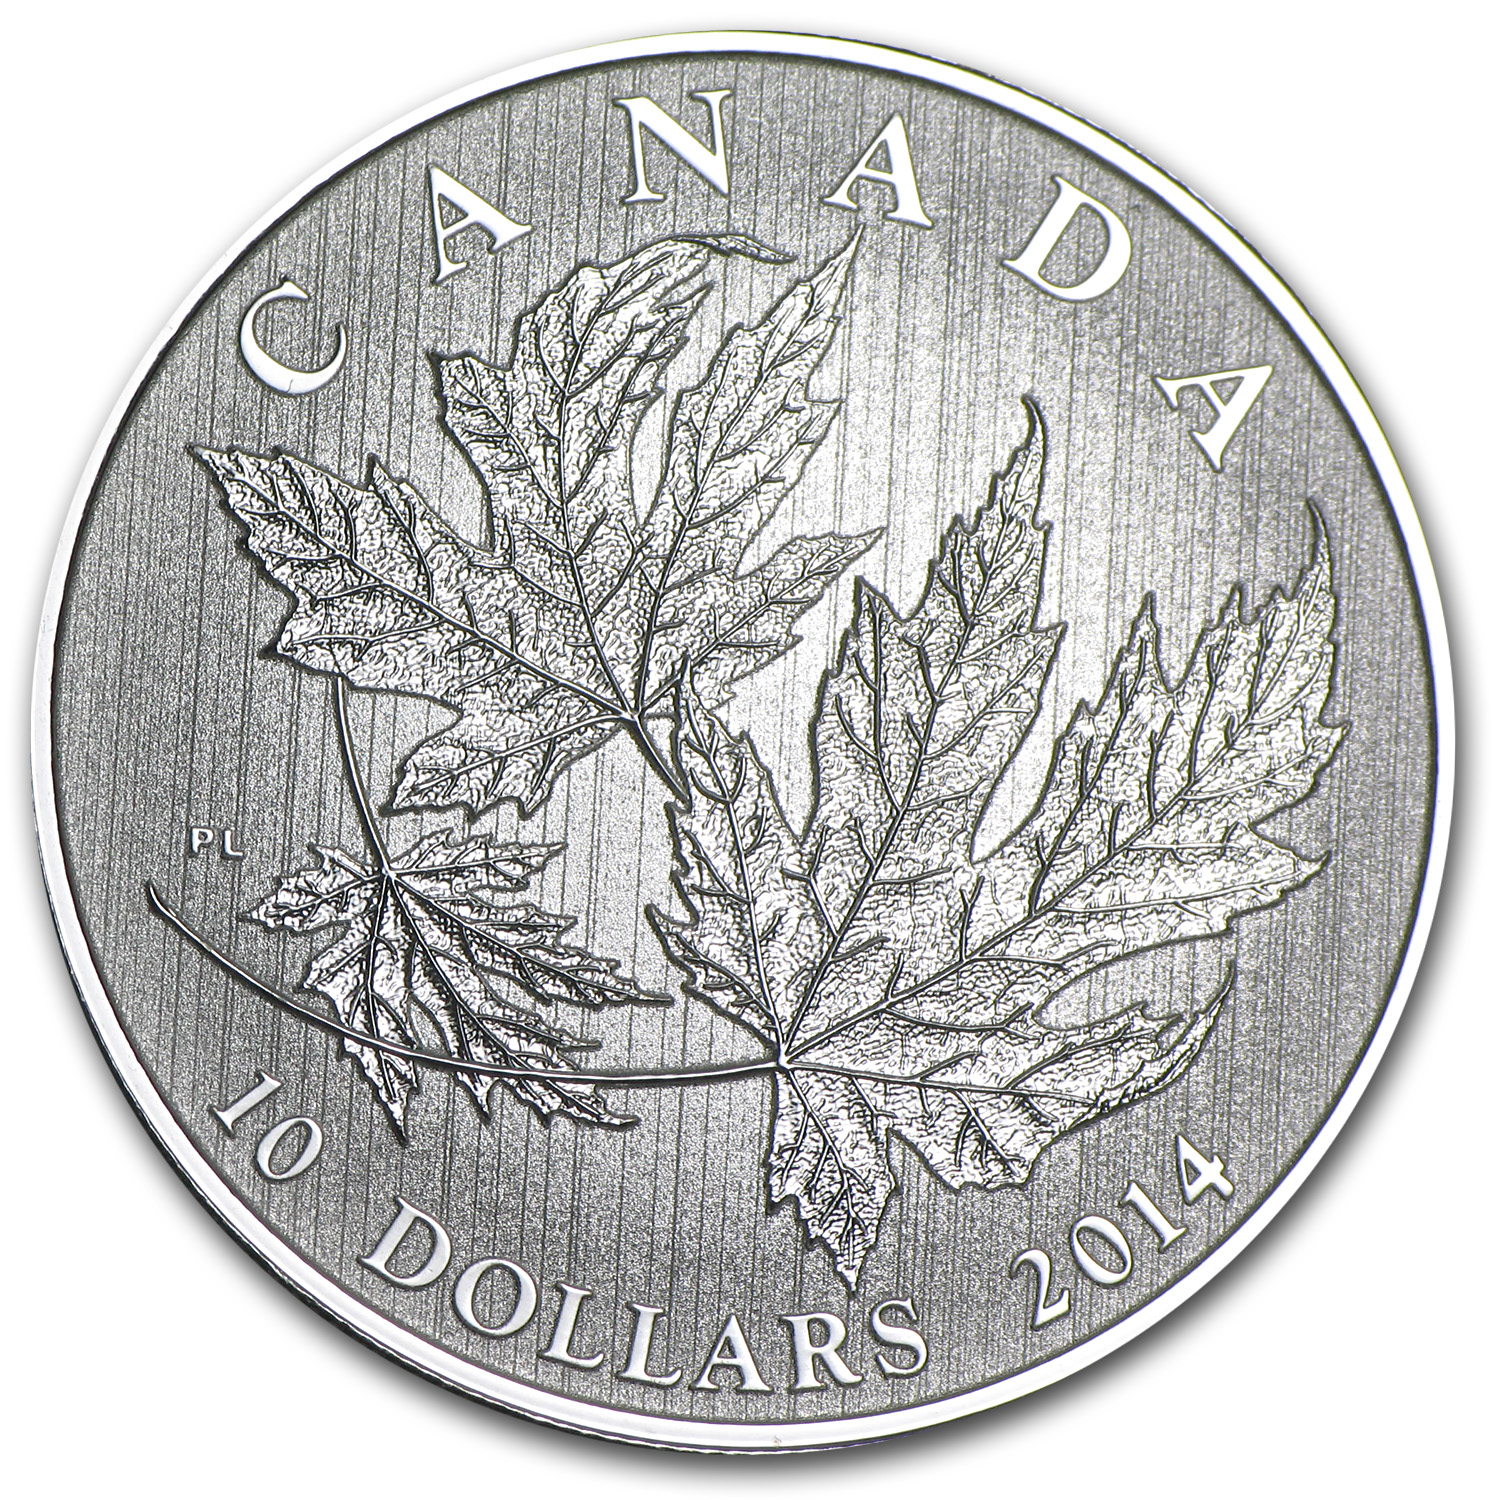 2014 Canada 1/2 oz Silver $10 Maple Leaf